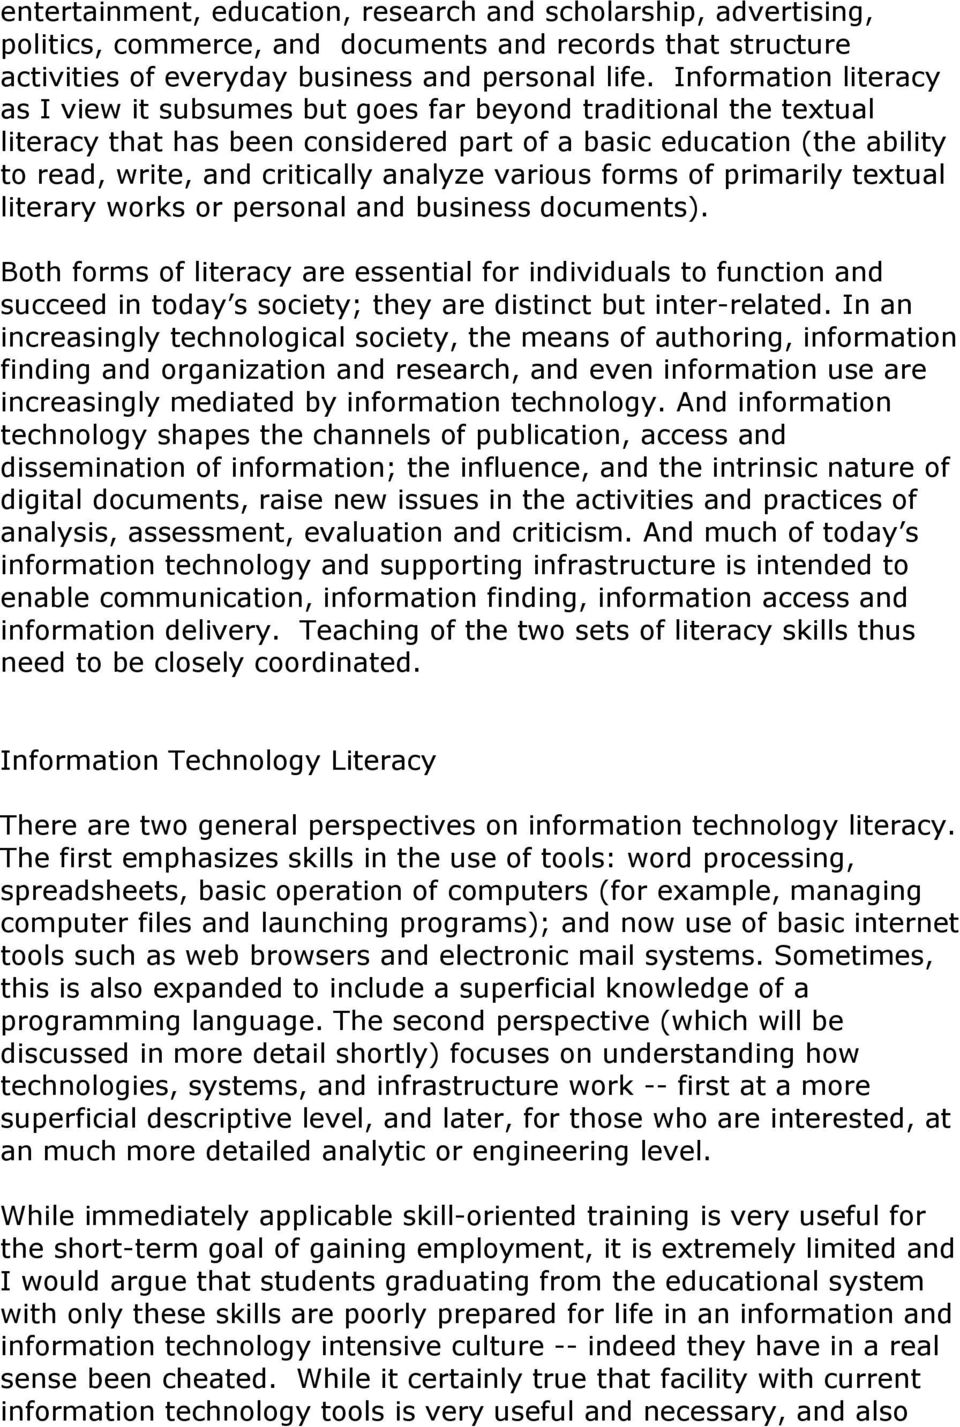 various forms of primarily textual literary works or personal and business documents).